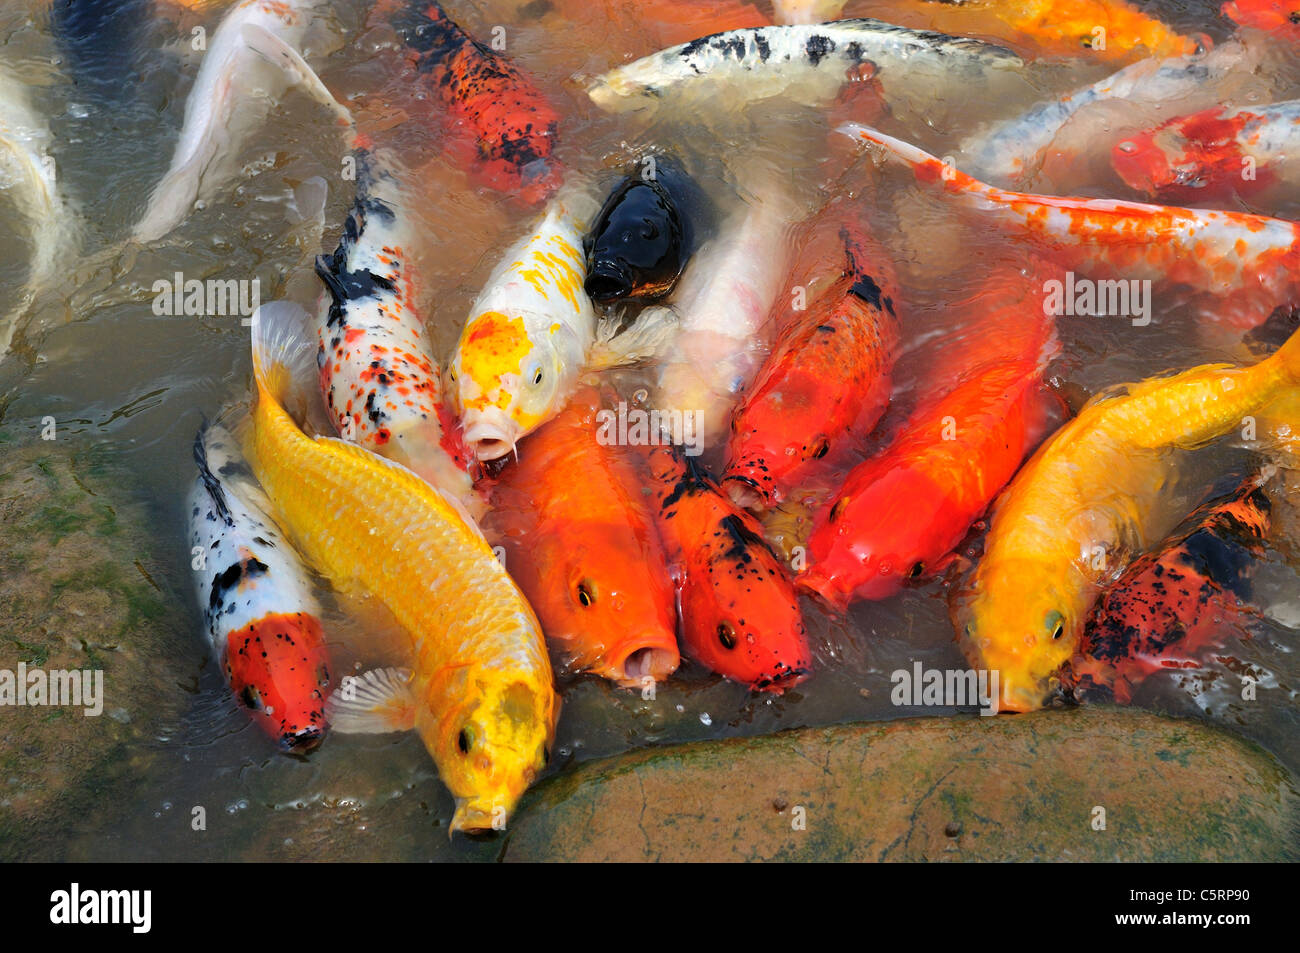 Colored Carp Stock Photos & Colored Carp Stock Images - Alamy